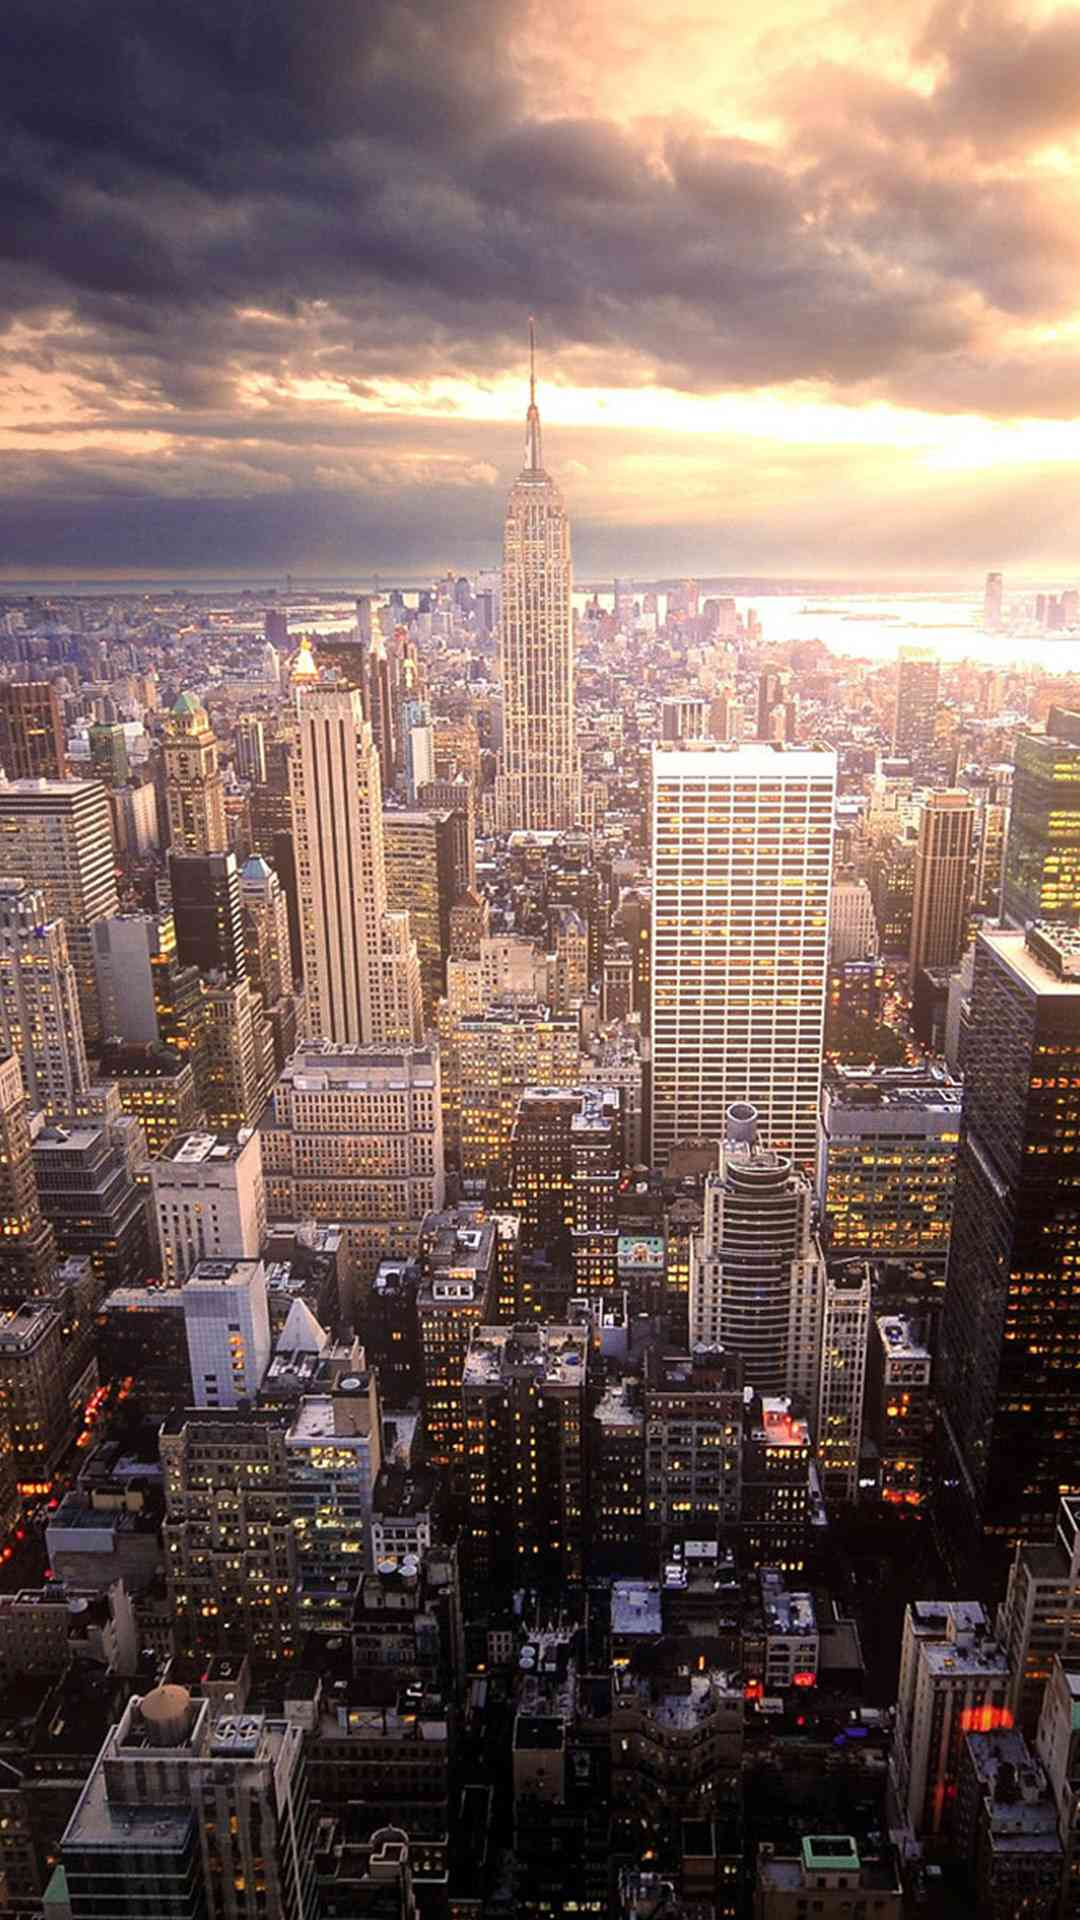 City wallpaper mobile 1080x1920